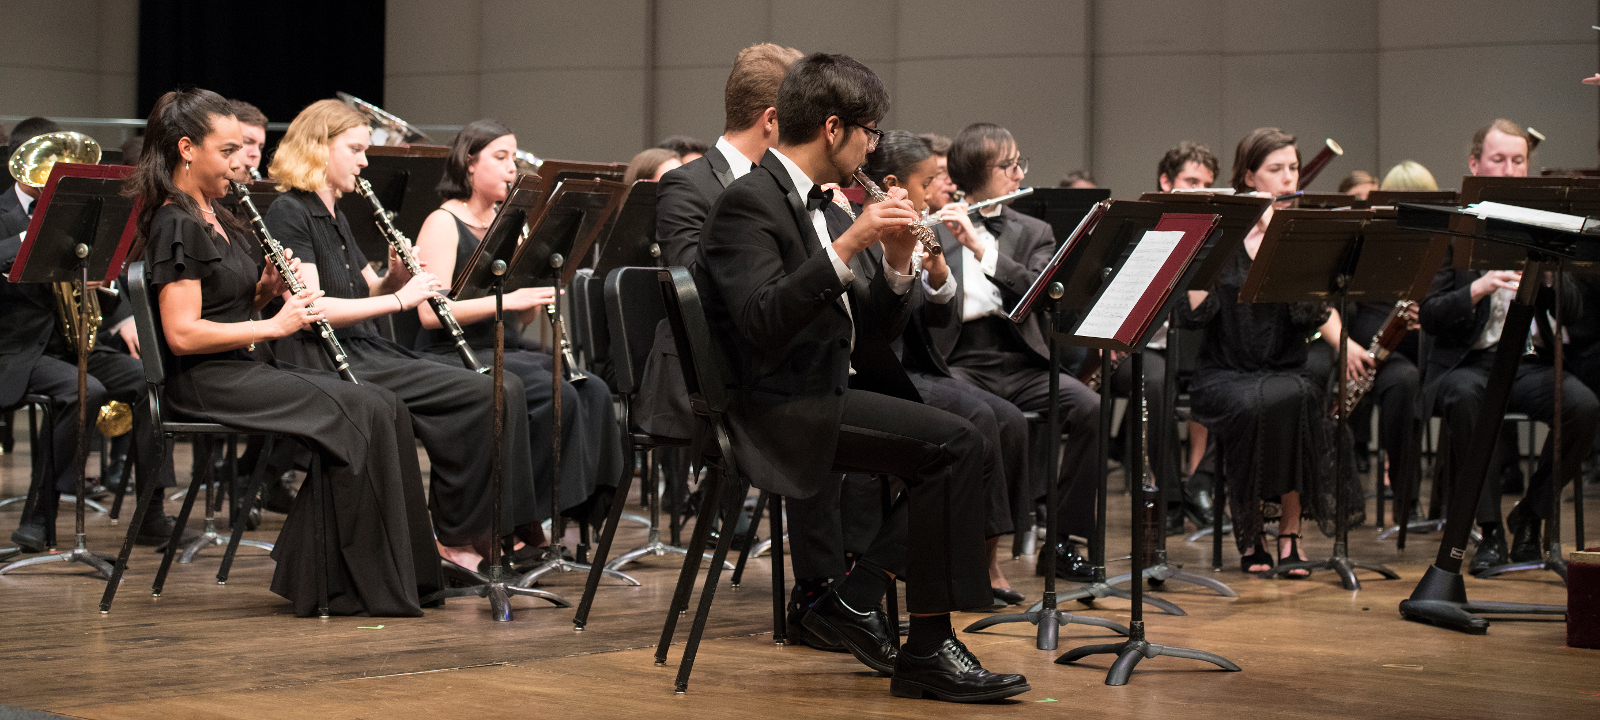 Join the tradition of the Loyola Wind Ensemble